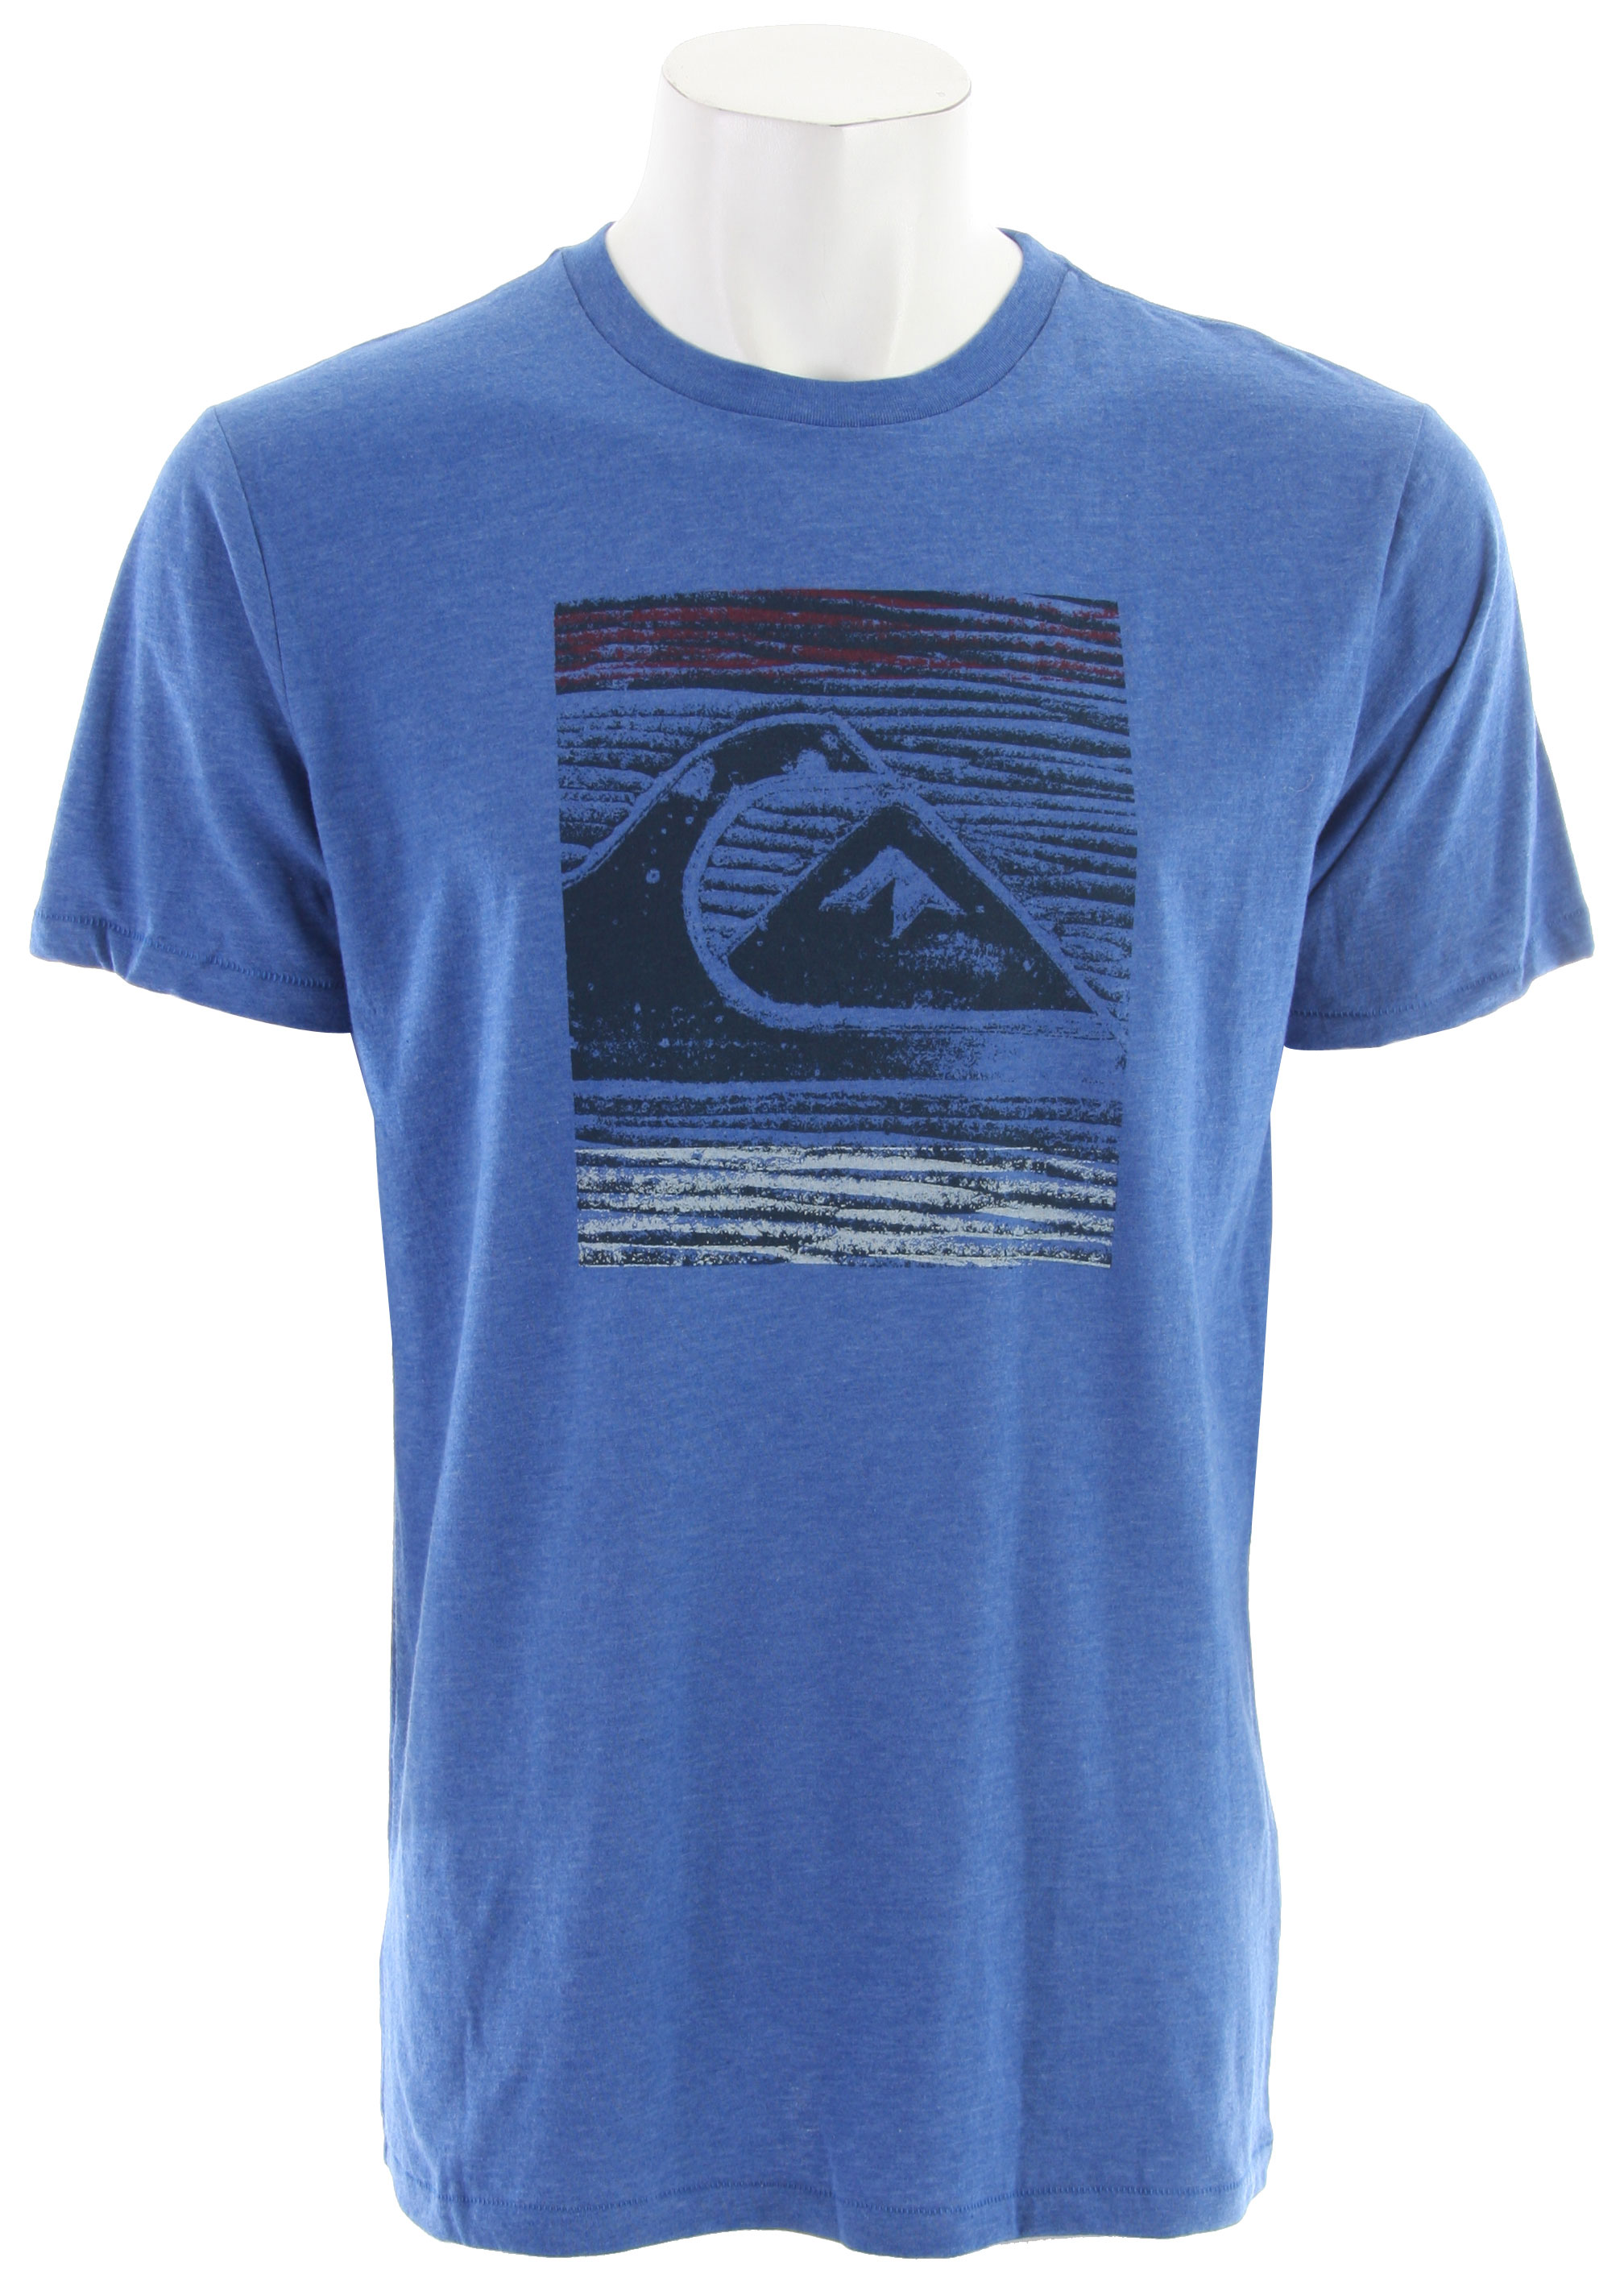 Wake Summer is here and that means solid south swell, 5am alarm clock wake-ups and death drops at the wedge. It really doesn't make sense until you do it.Key Features of the Quiksilver The Wedge T-Shirt: 50% Cotton 50% Polyester Soft ringspun premium jersey with silicone wash for a vintage hand/feel Slim fit - $17.95